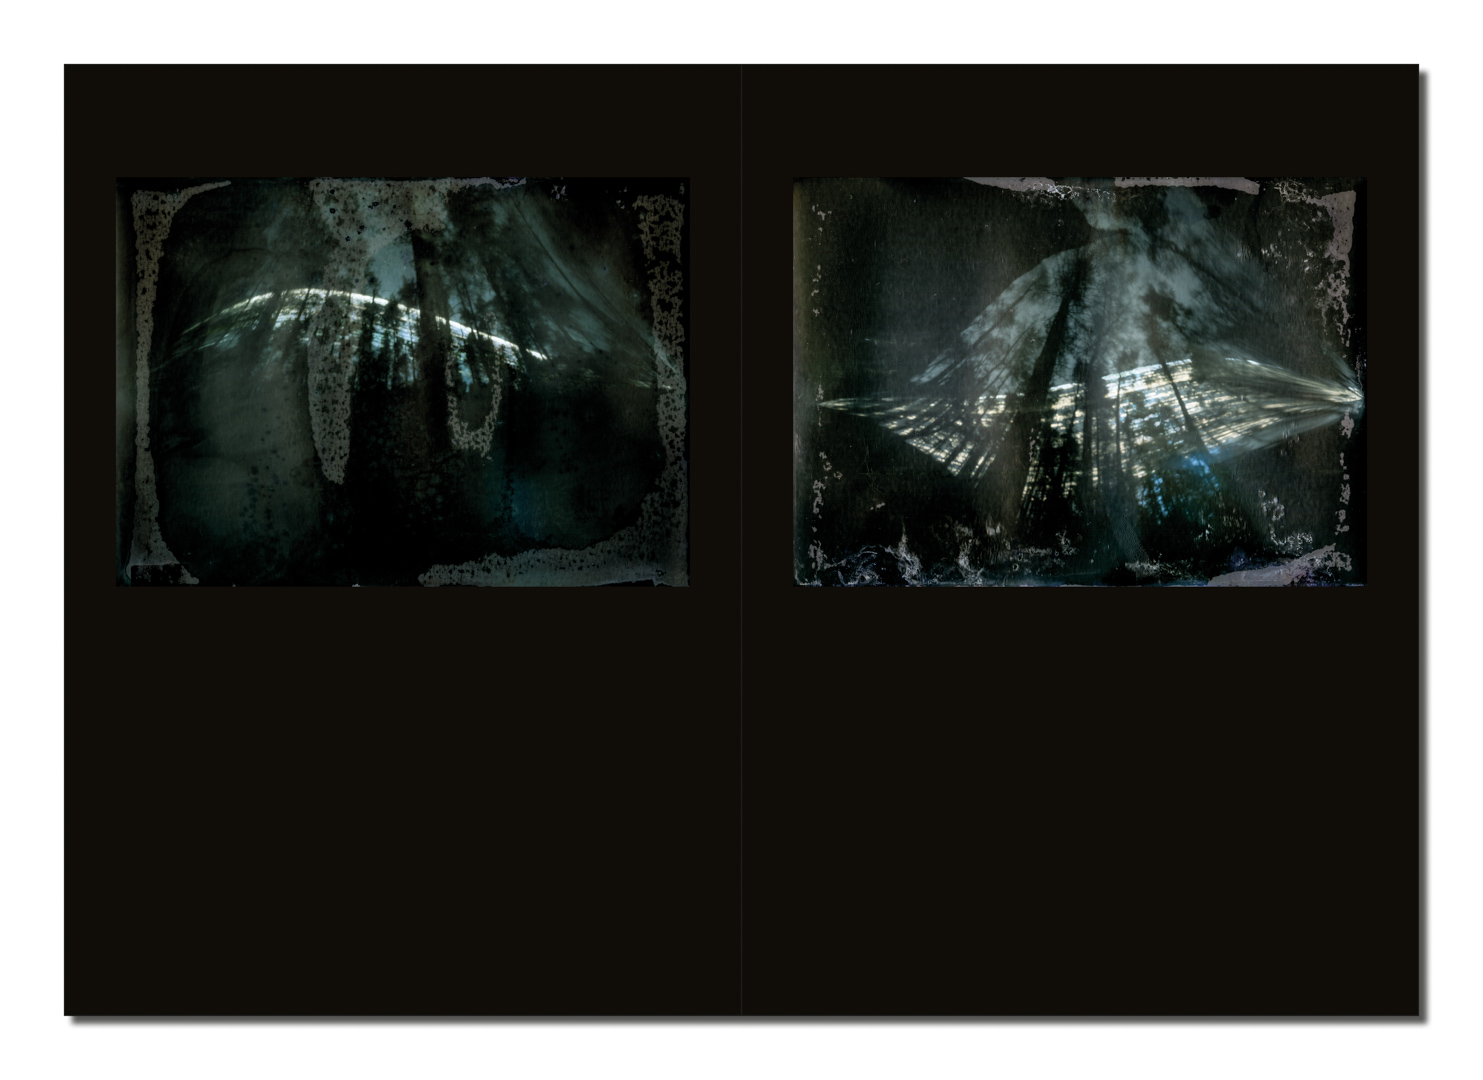 Solargraphs by Al Brydon © JW Editions THE SOUTH WEST COLLECTIVE OF PHOTOGRAPHY LTD